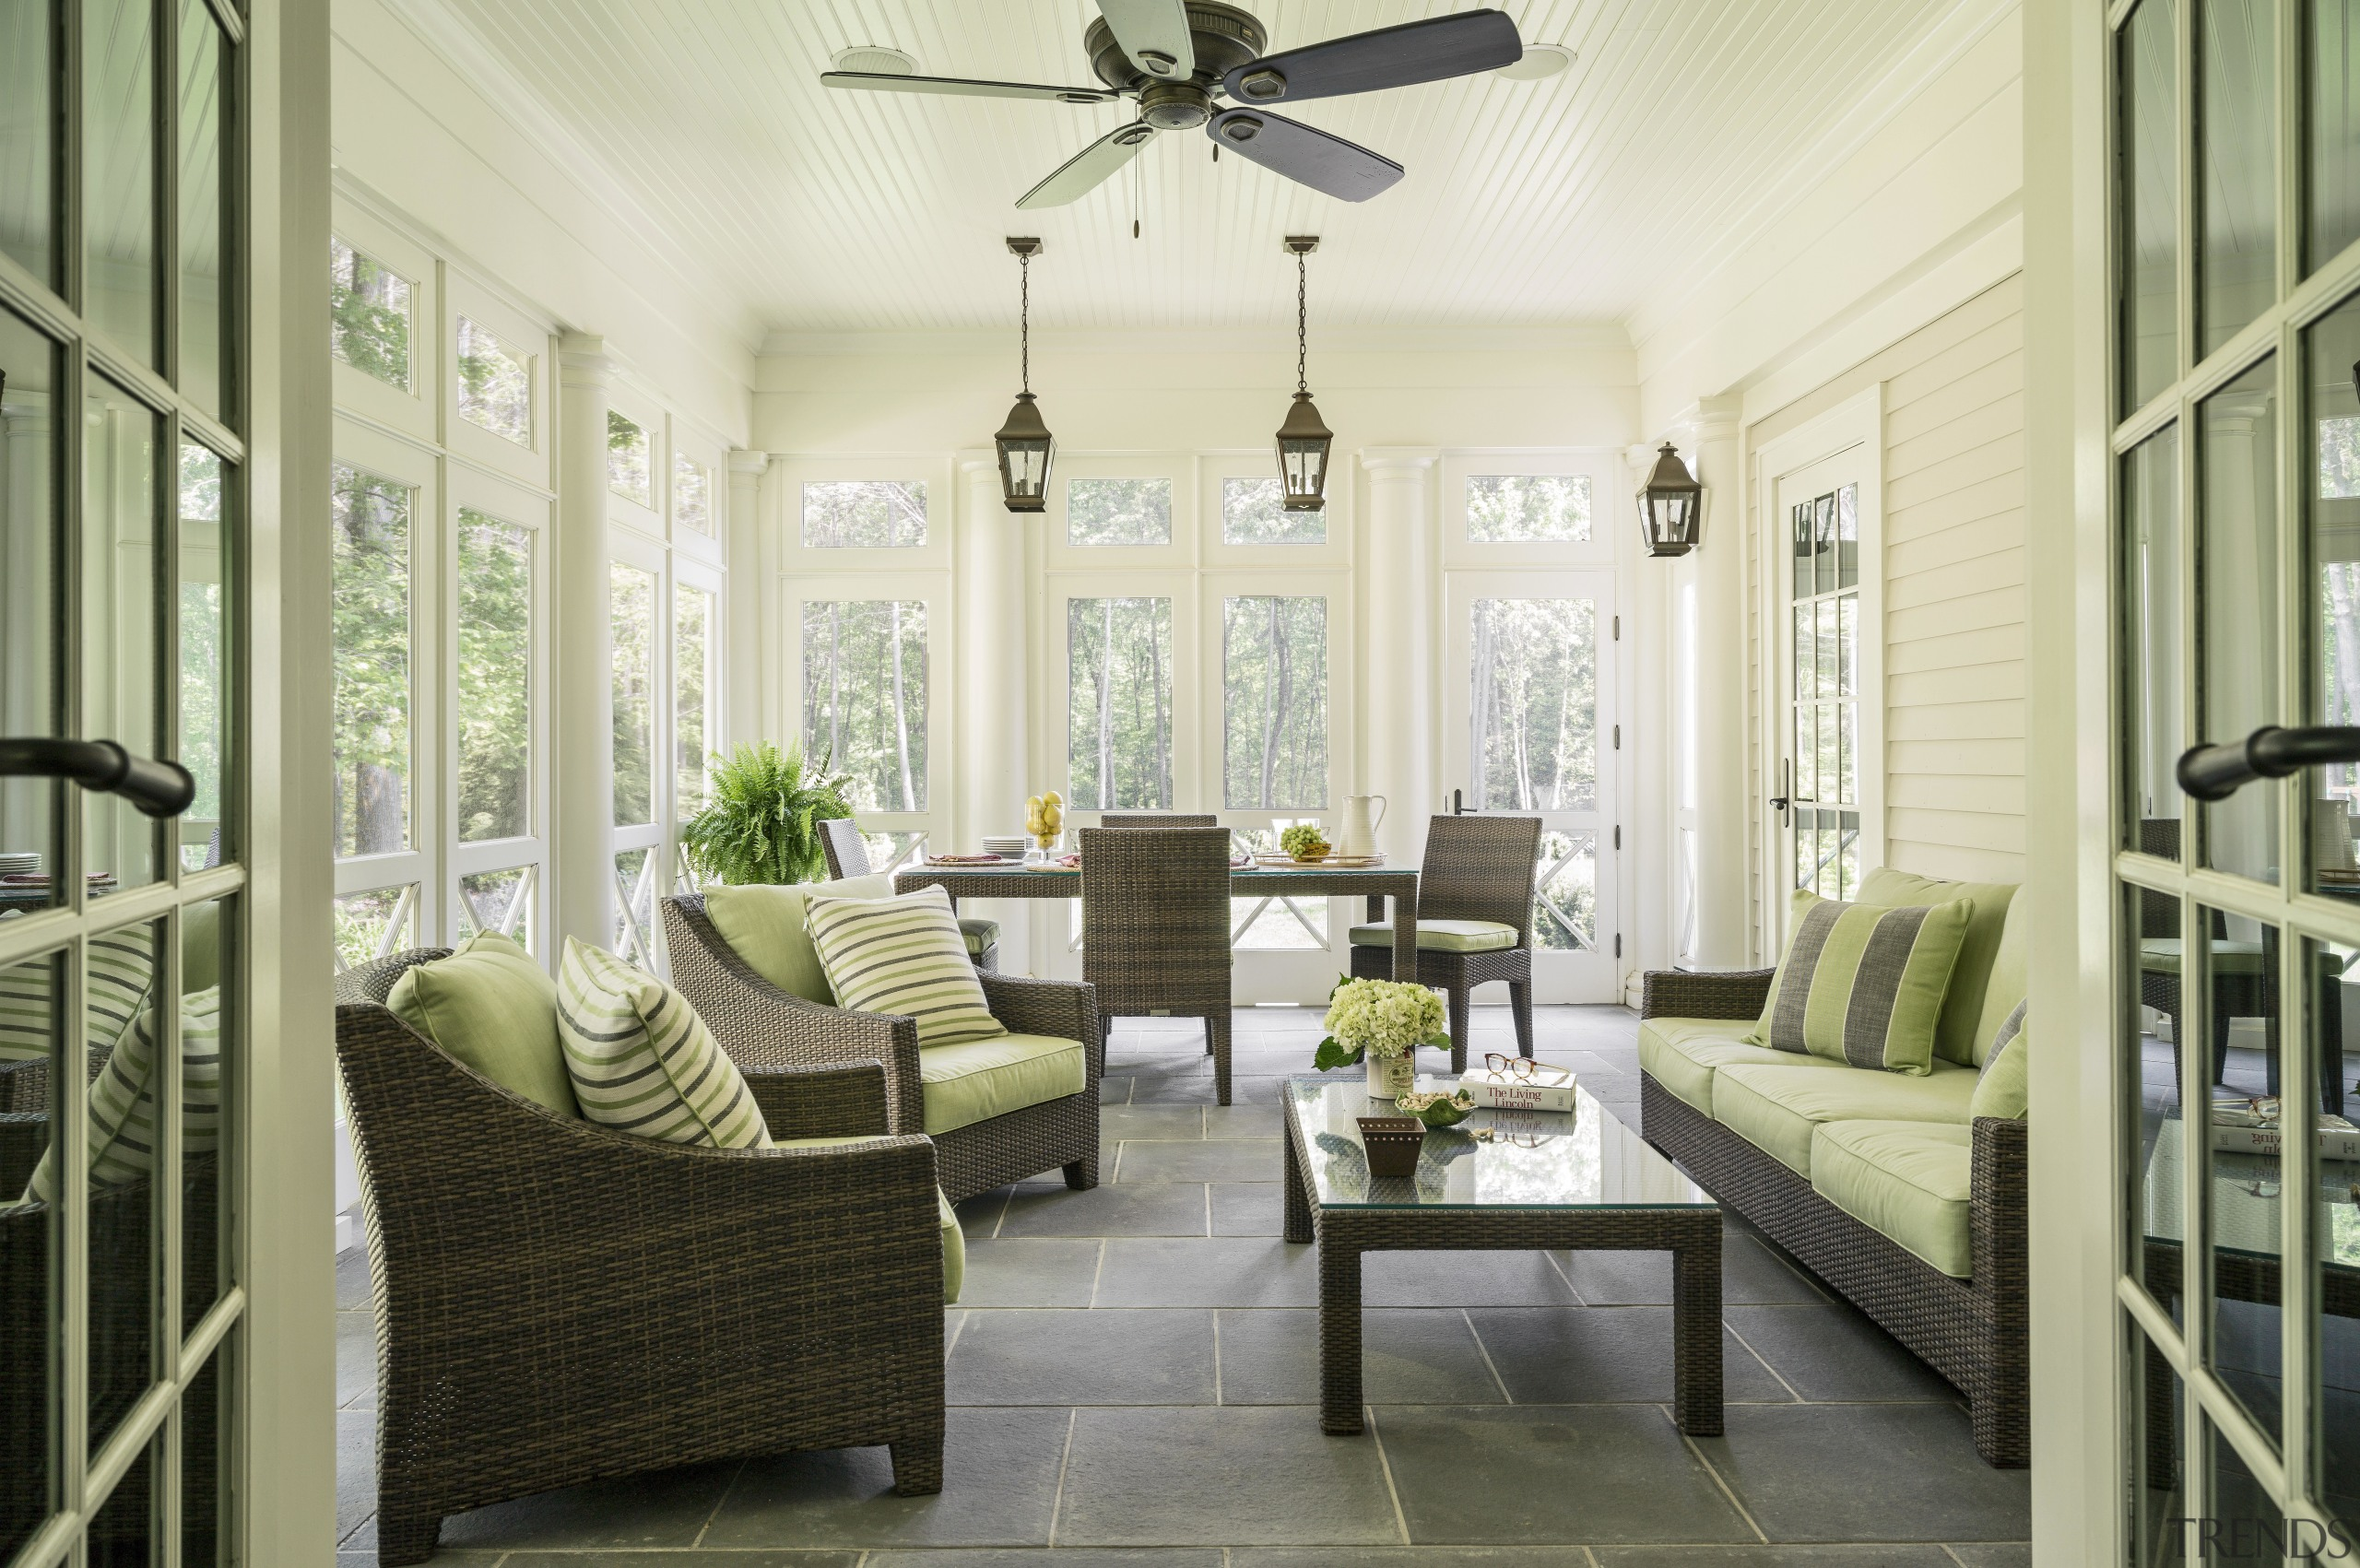 A west-facing screened porch at the rear of ceiling, estate, home, interior design, living room, lobby, porch, real estate, room, window, yellow